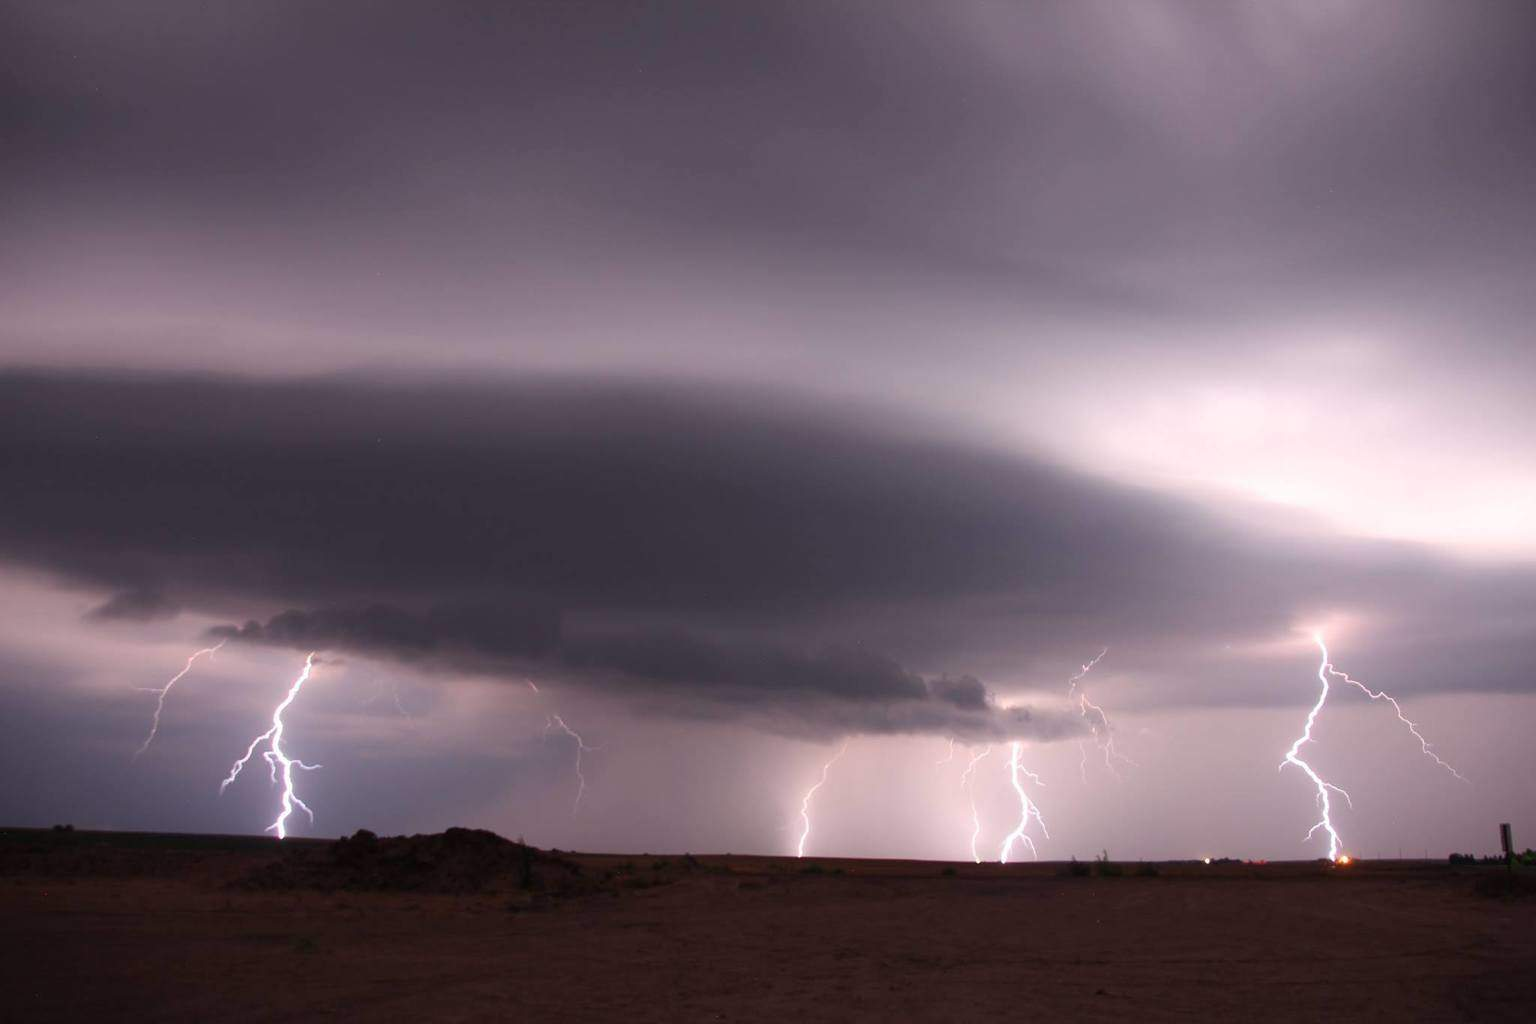 July 23, 2015 - Just North of Norton Kansas  No enhancements, no Photoshop, no stacking.... just the raw image... 7 Cg strikes in less than 45 seconds... Never have I caught anything likes this before. Its a first for me!